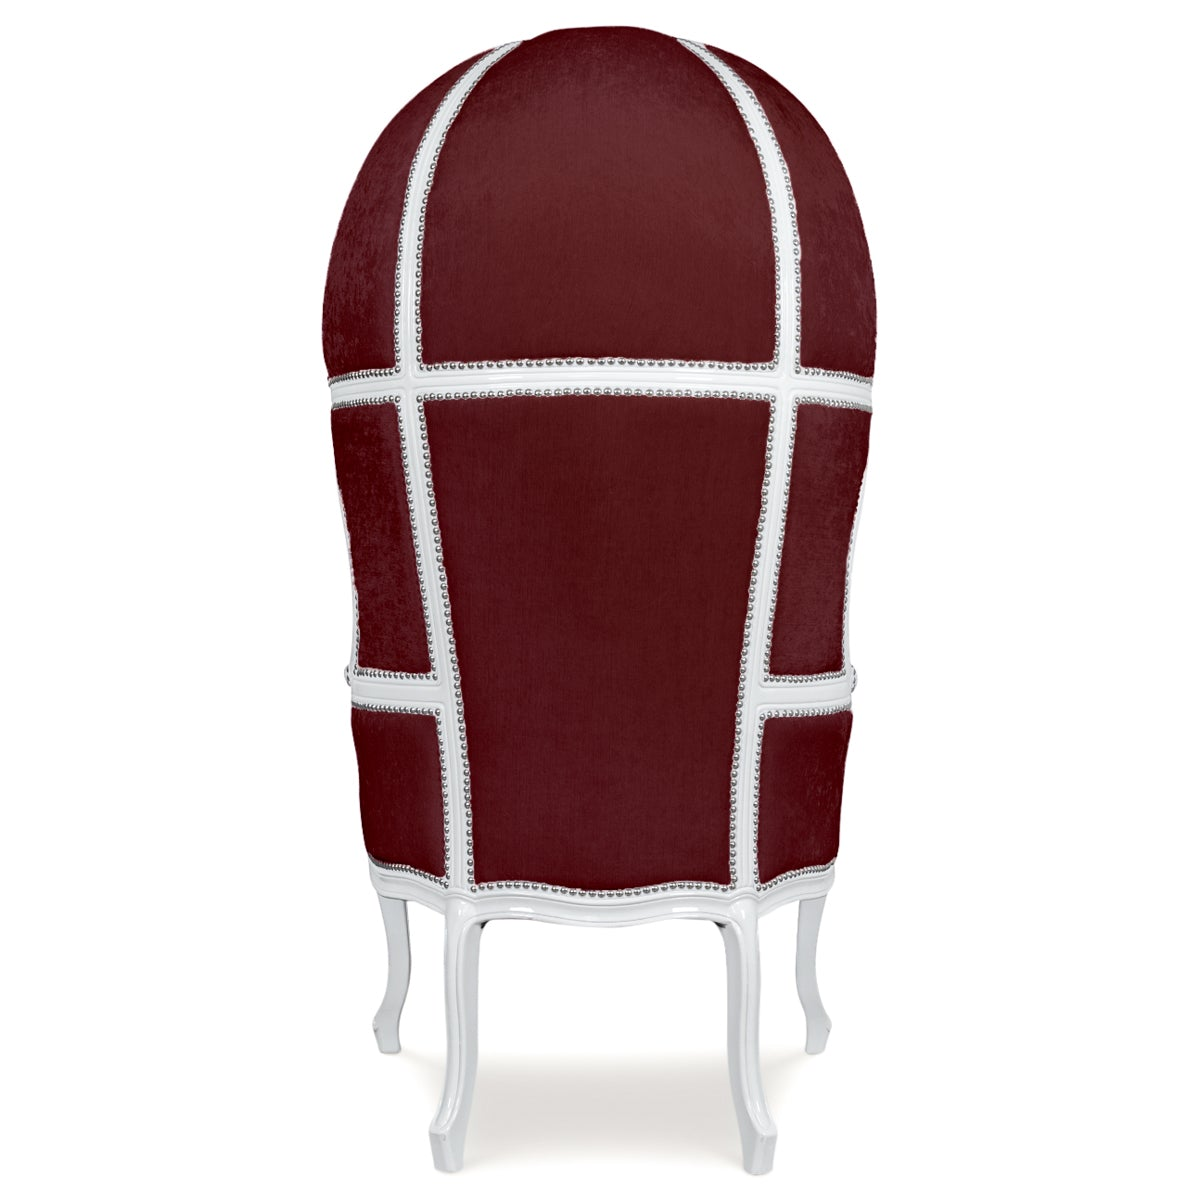 Balloon Chair in Velvet - ModShop1.com